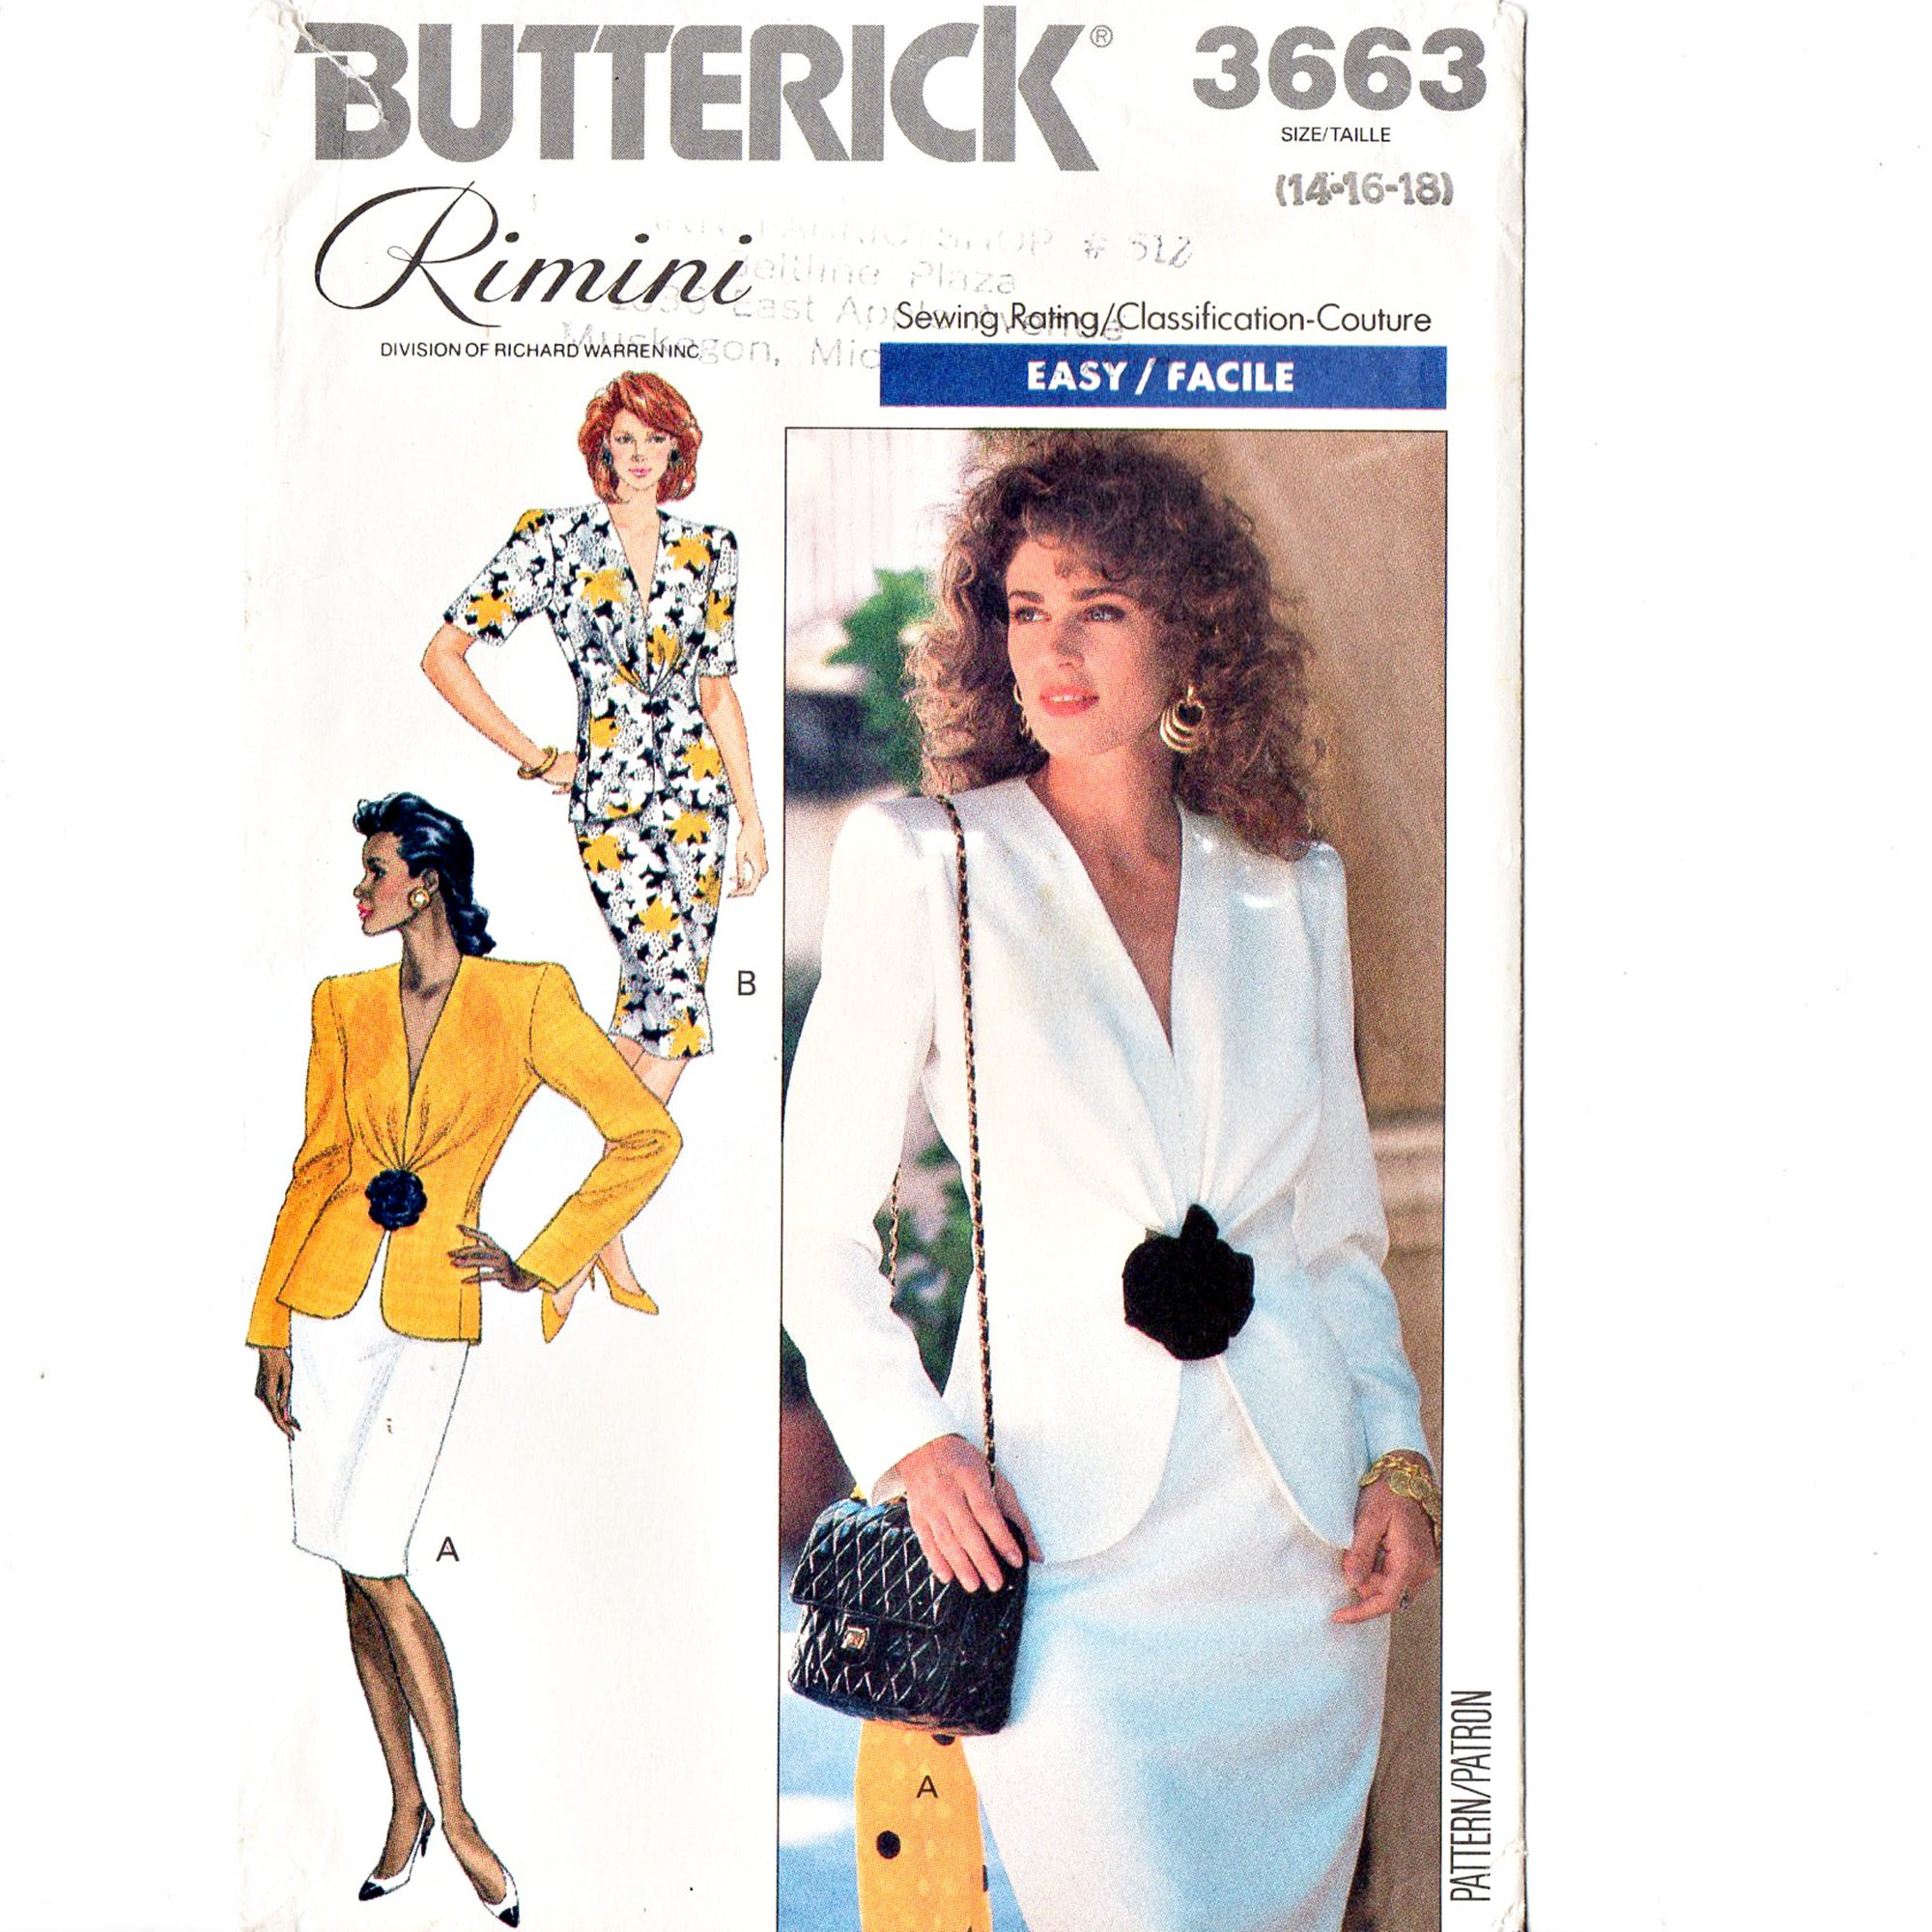 Butterick 3663 Rimini Misses Top, Skirt 80s Vintage Sewing Pattern UNCUT Size